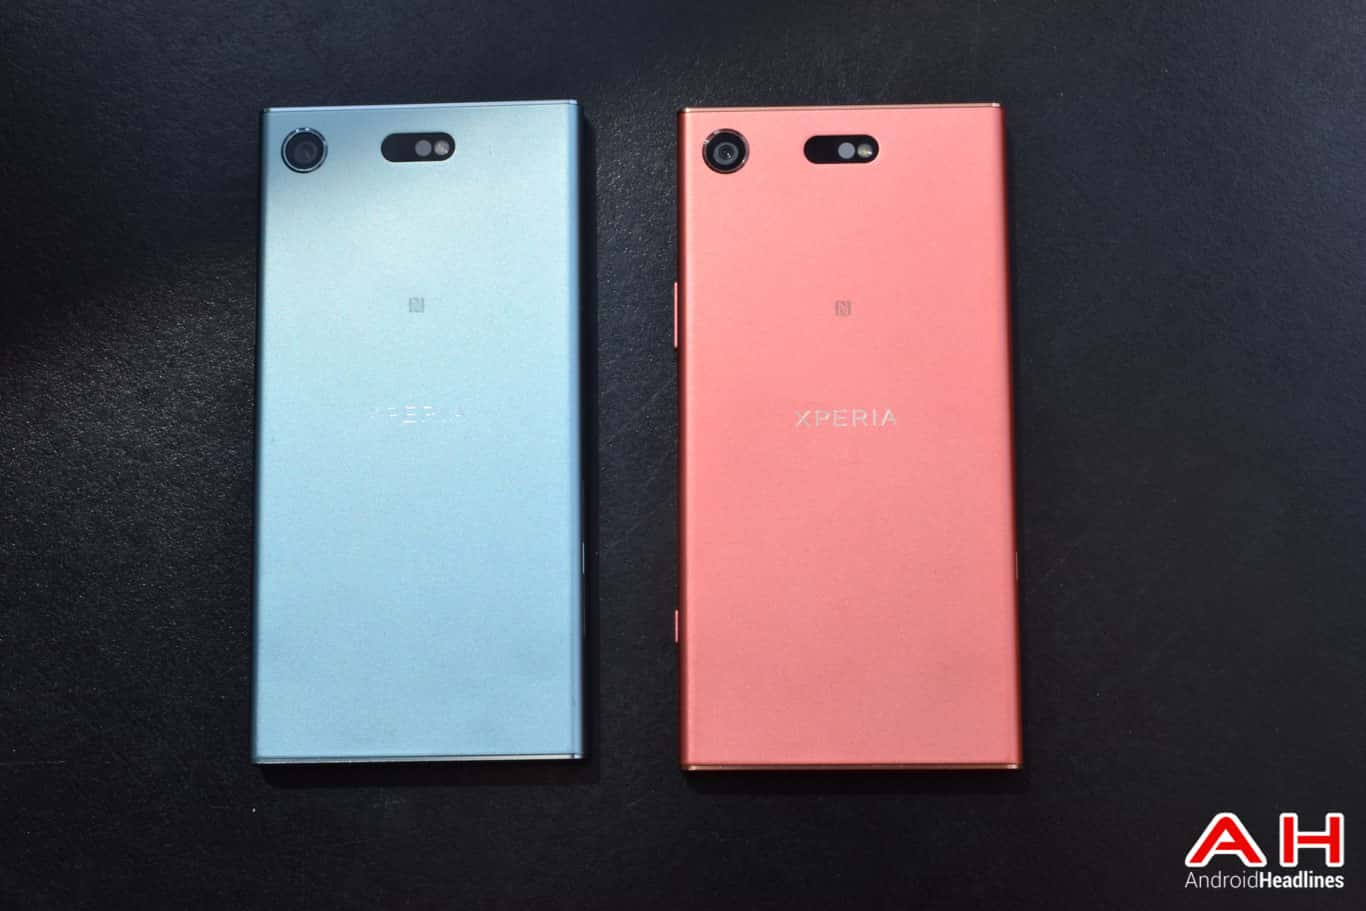 sony xperia xz1 xperia xz1 compact have 2 700mah batteries android news. Black Bedroom Furniture Sets. Home Design Ideas